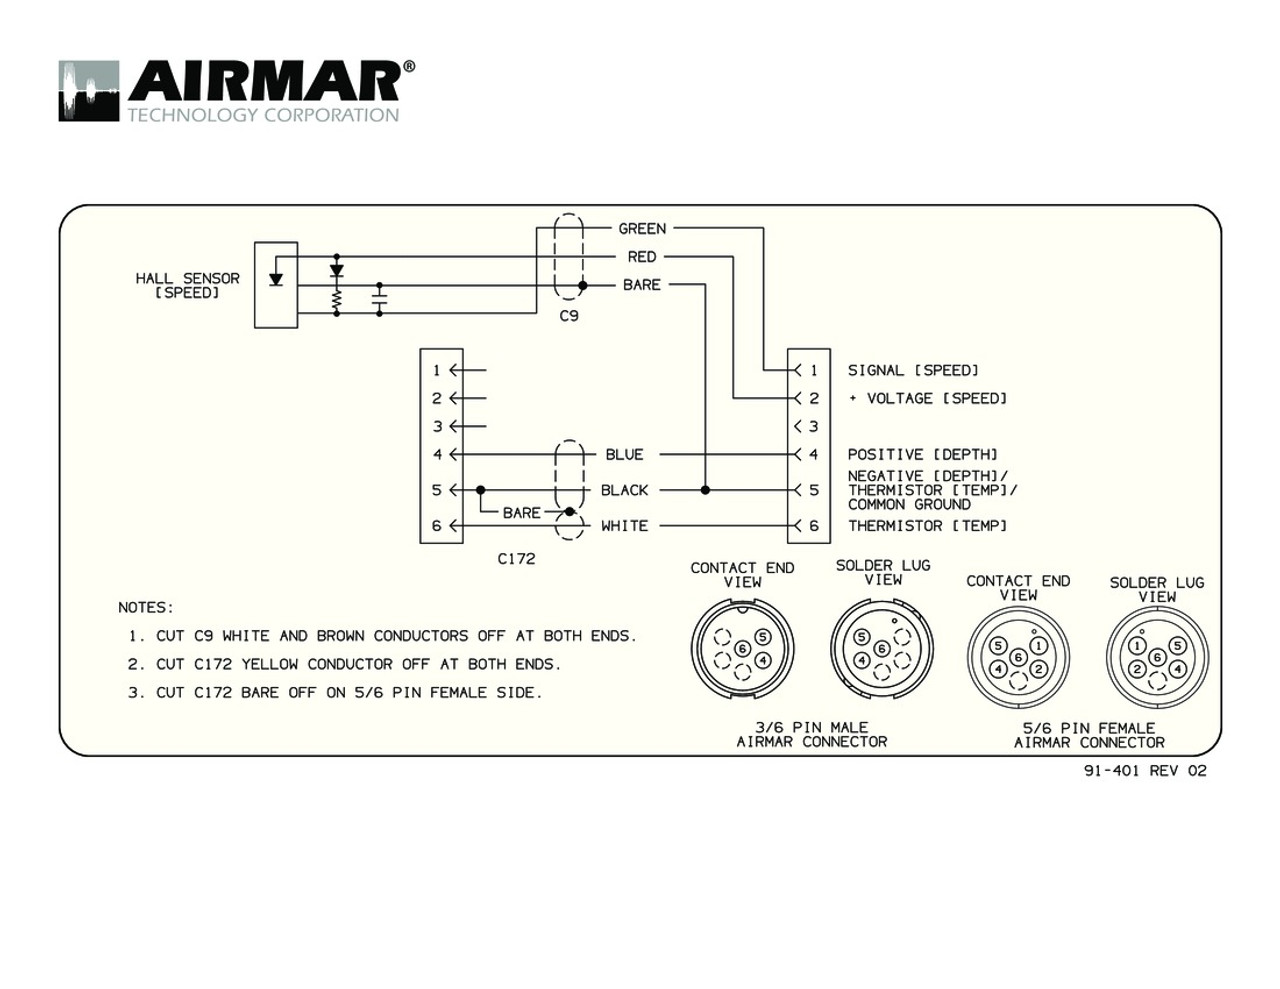 Airmar Wiring Diagram Garmin 6 Pin  S